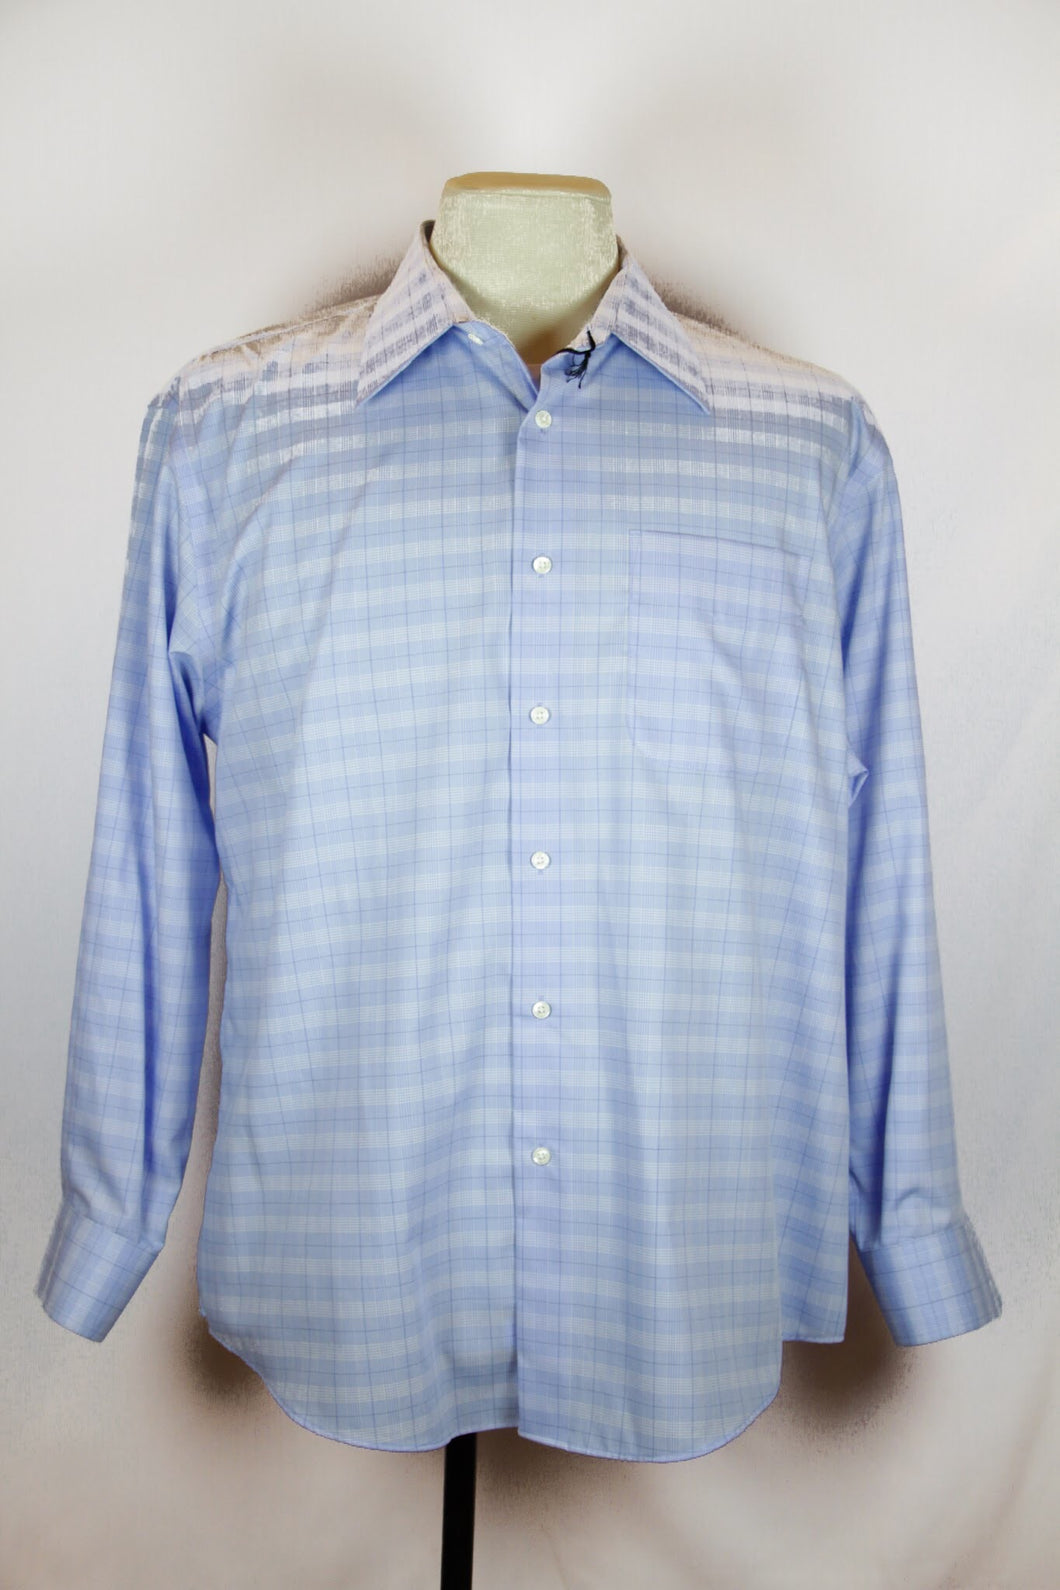 Nordstrom Blue Gingham Shirt with collar